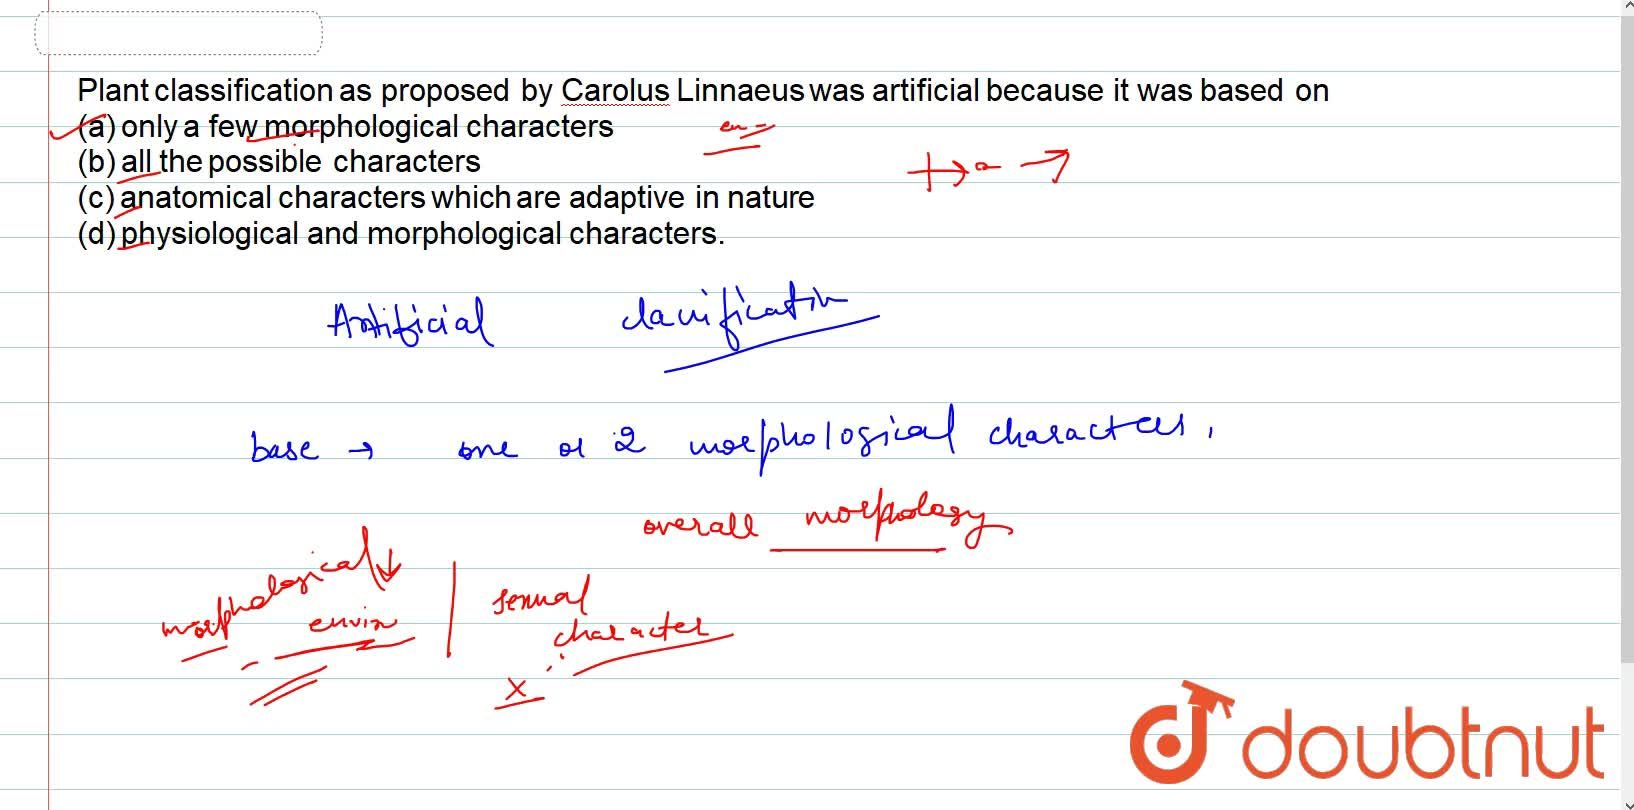 Plant classification as proposed by carolus linnaeus was artifical because it was based on